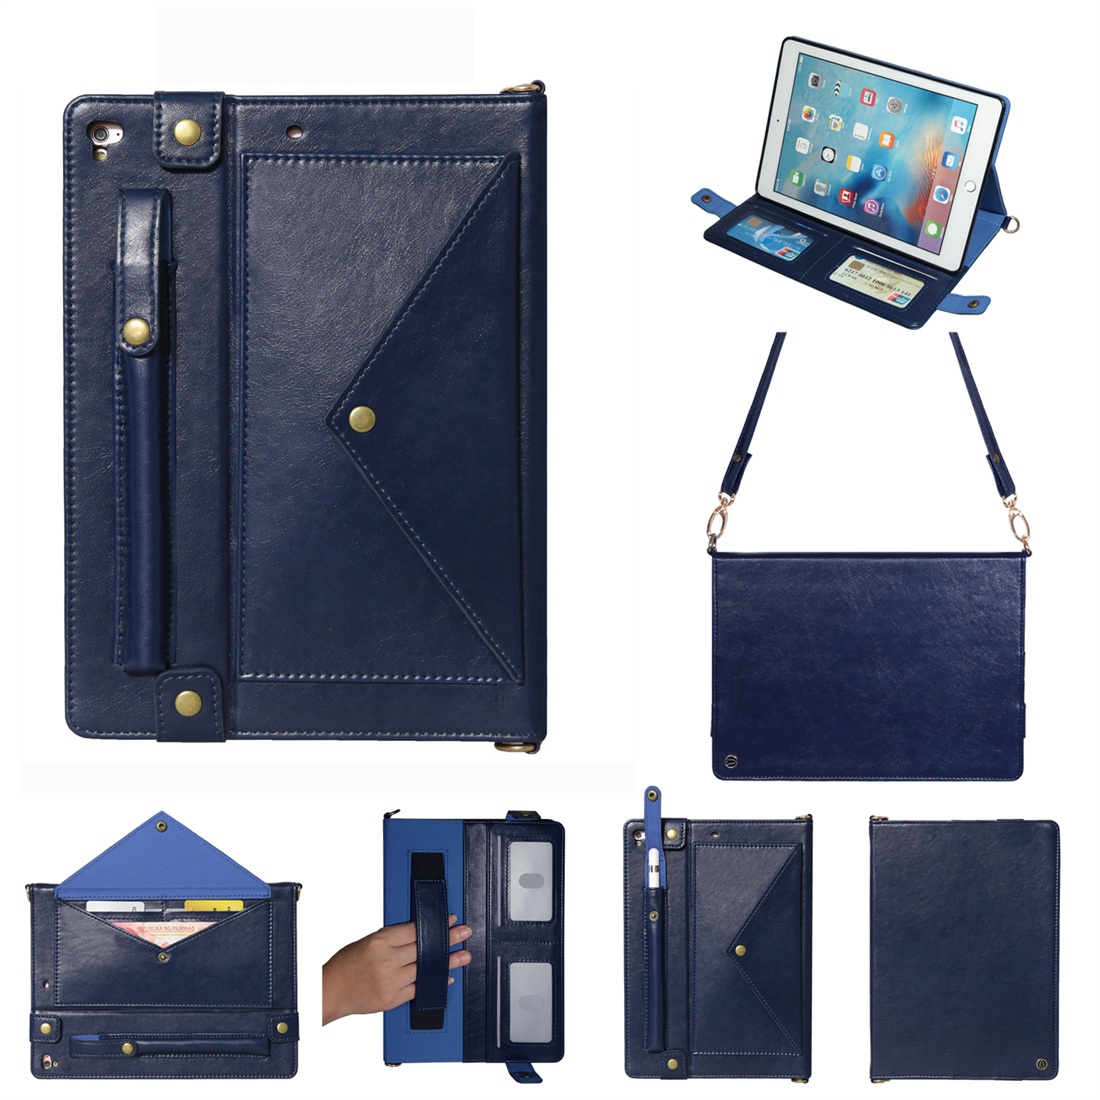 Leather iPad 9.7 Case (2018)/(2017), Air/ Air 2/ Pro 9.7 inch, Pen Holders & Strap (Blue)